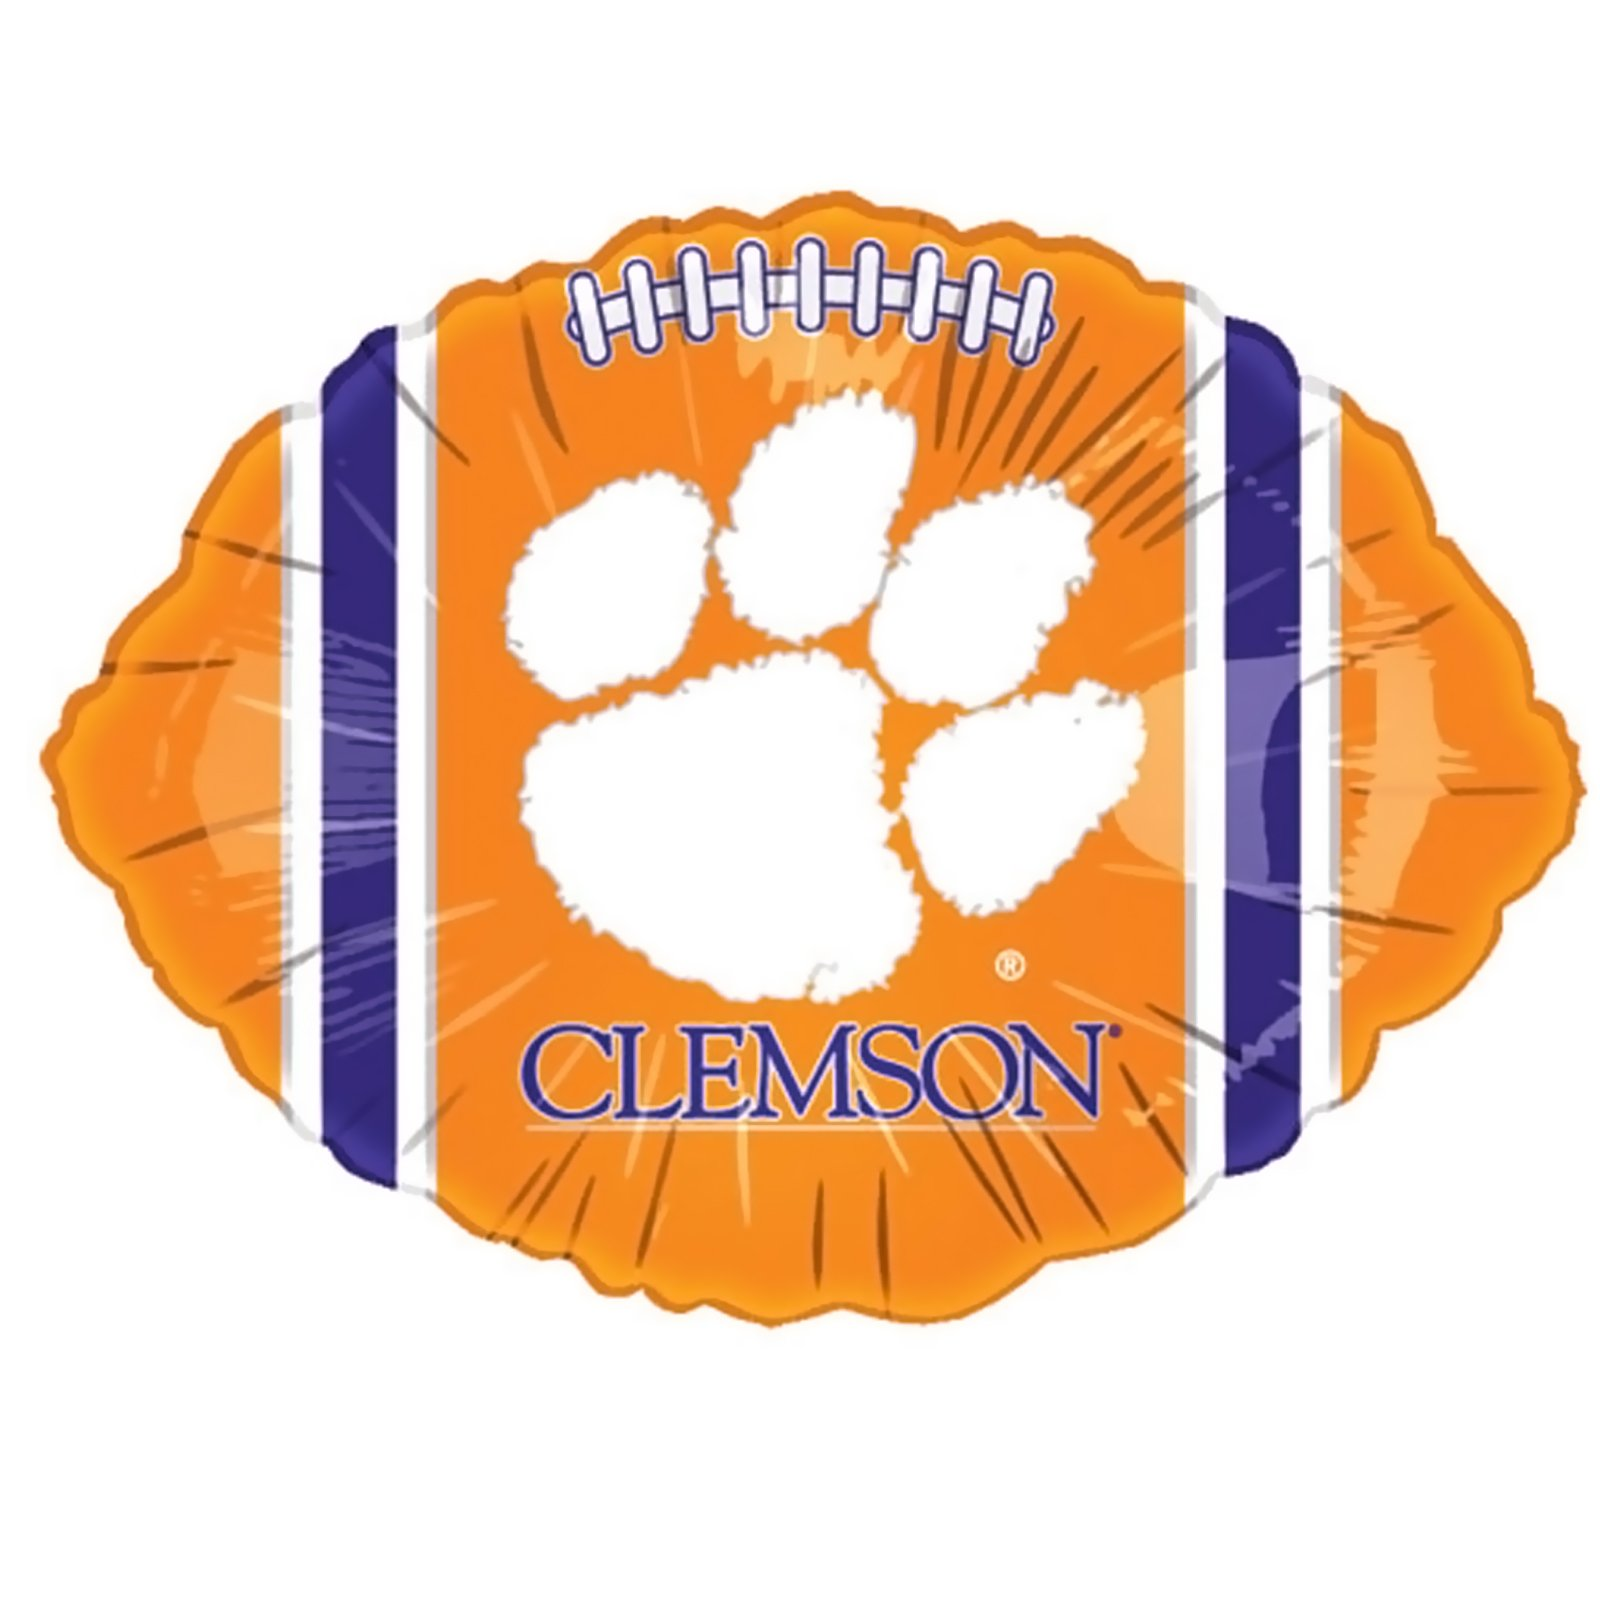 "Clemson Tigers - 18"" Foil Football Balloon"